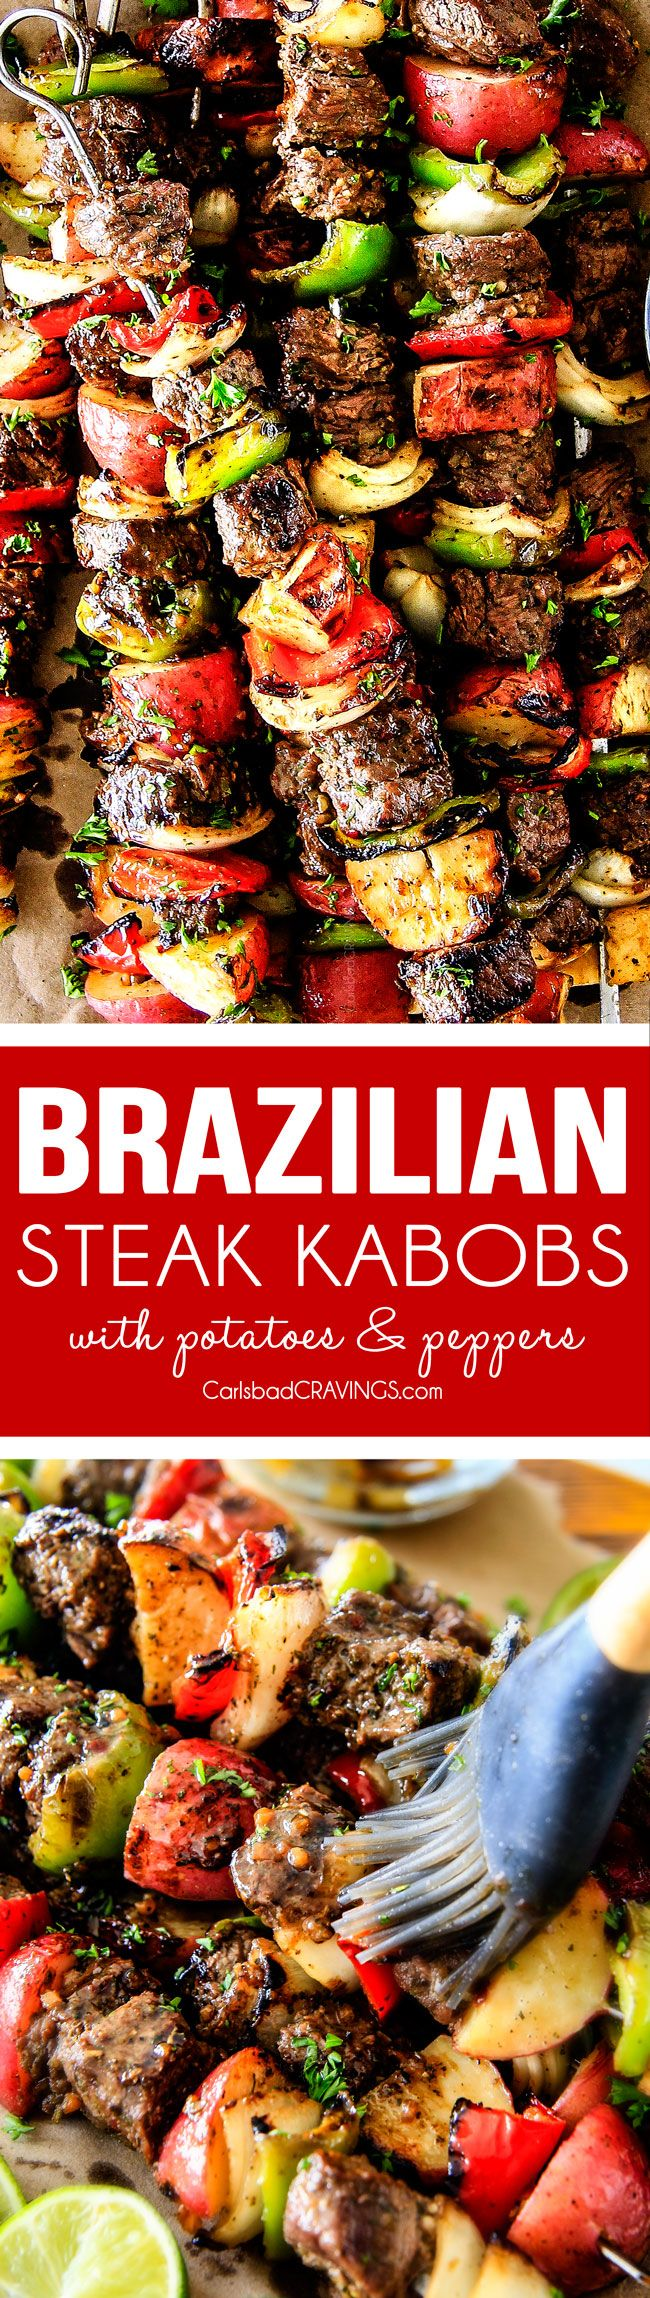 Brazilian Steak Kabobs with Potatoes, Onions and Peppers